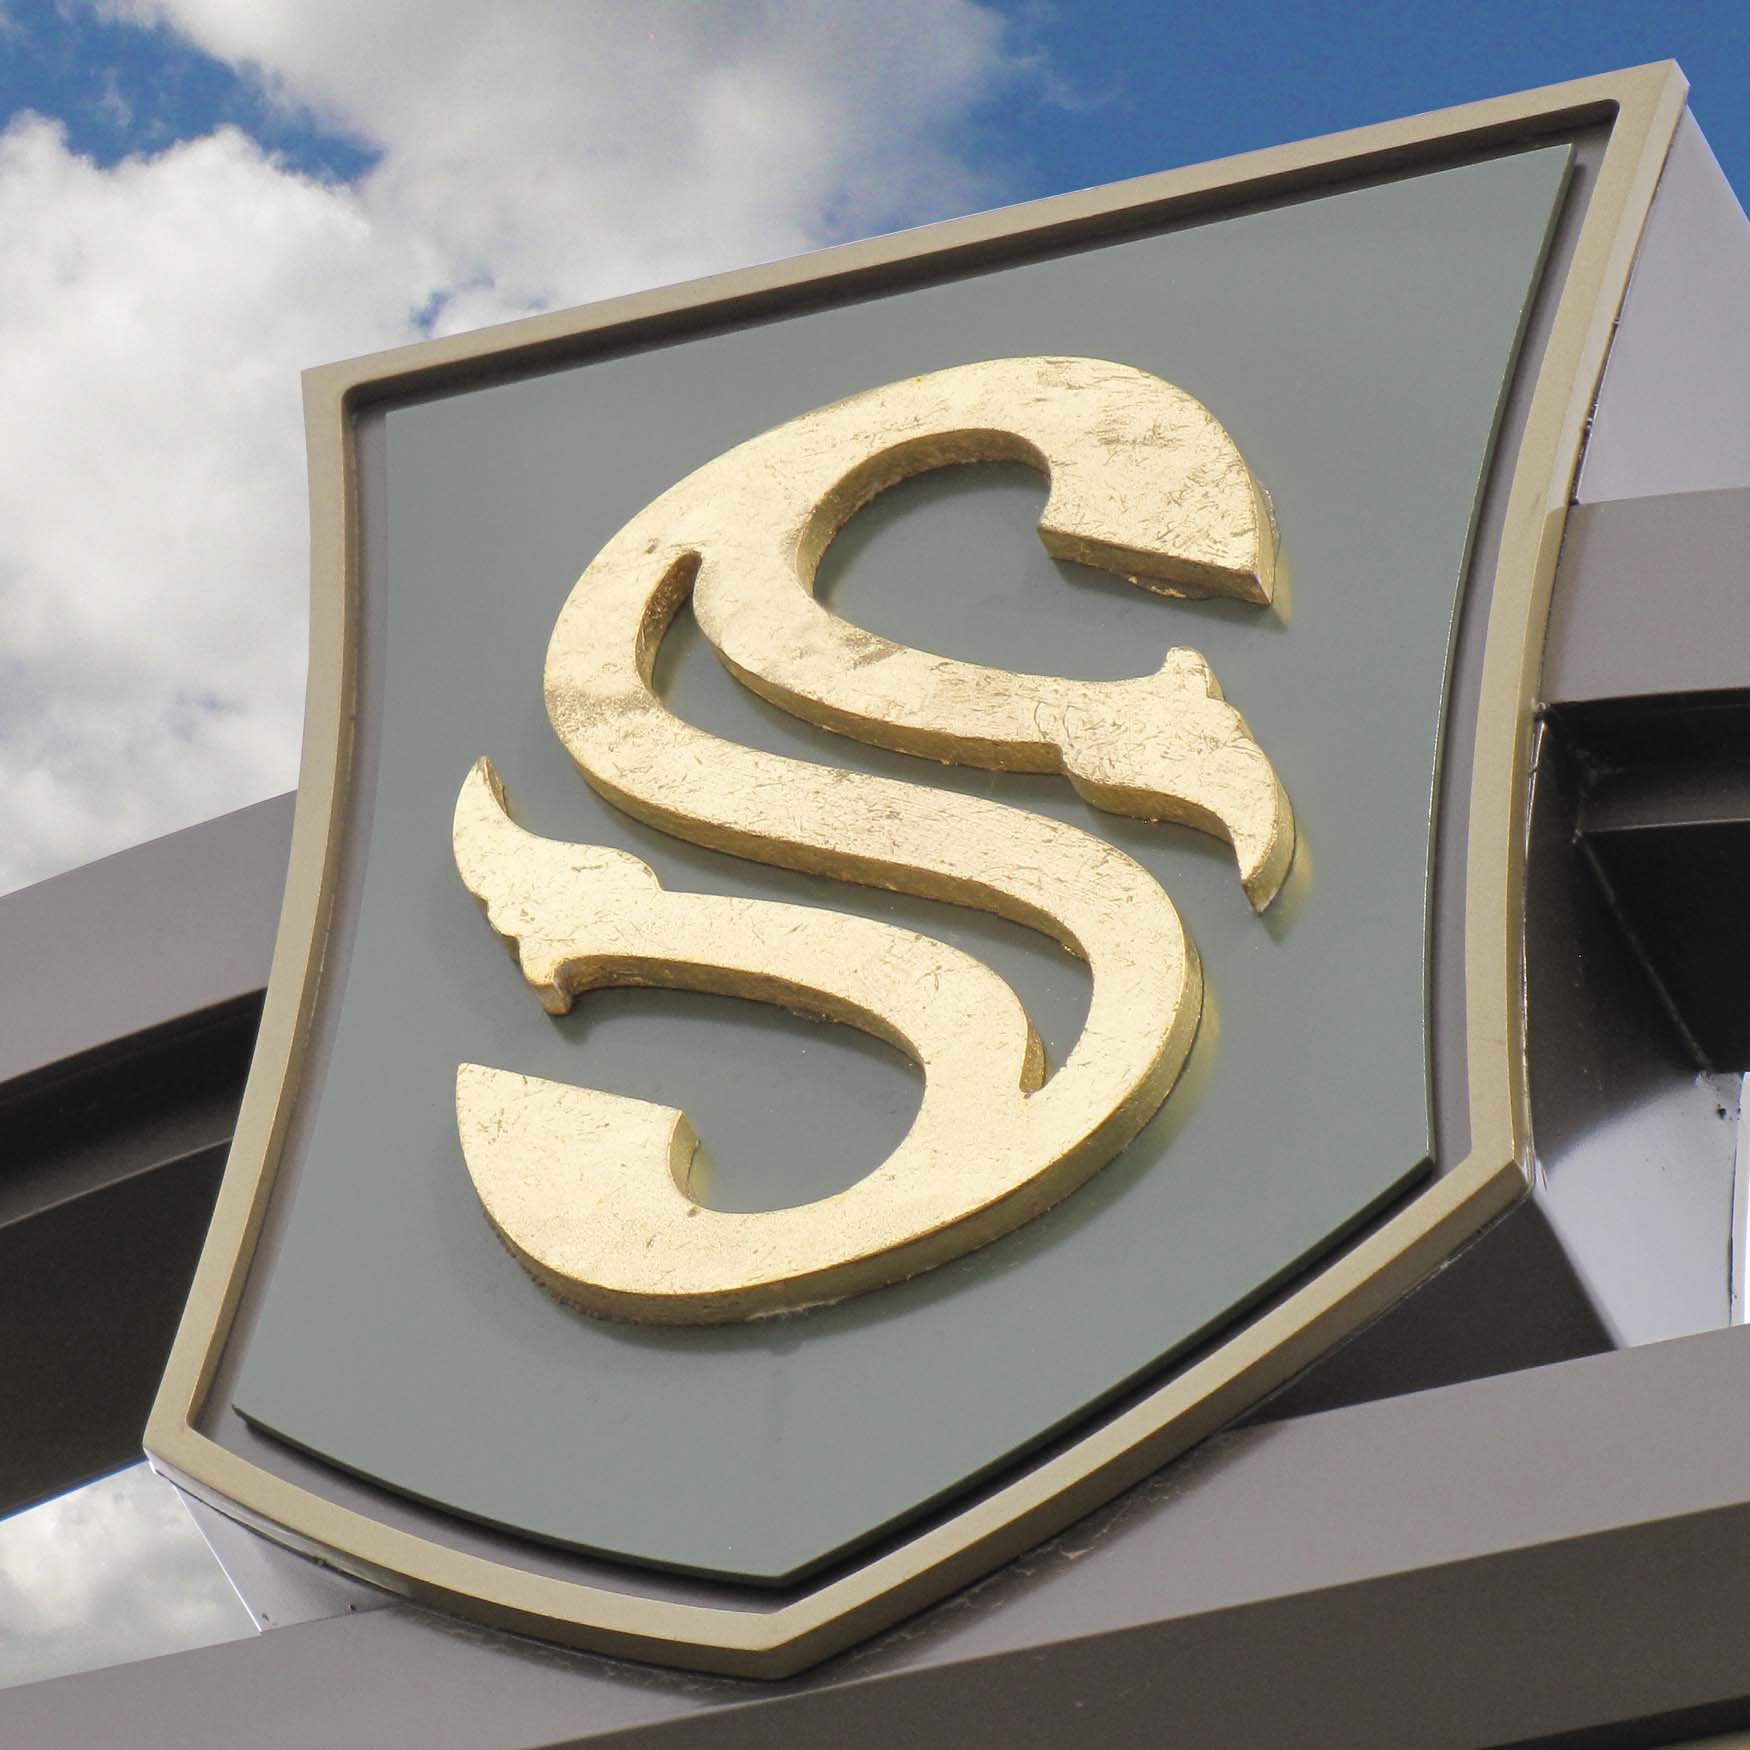 A close-up photo of the S mark of the City of Southlake applied to a sign.